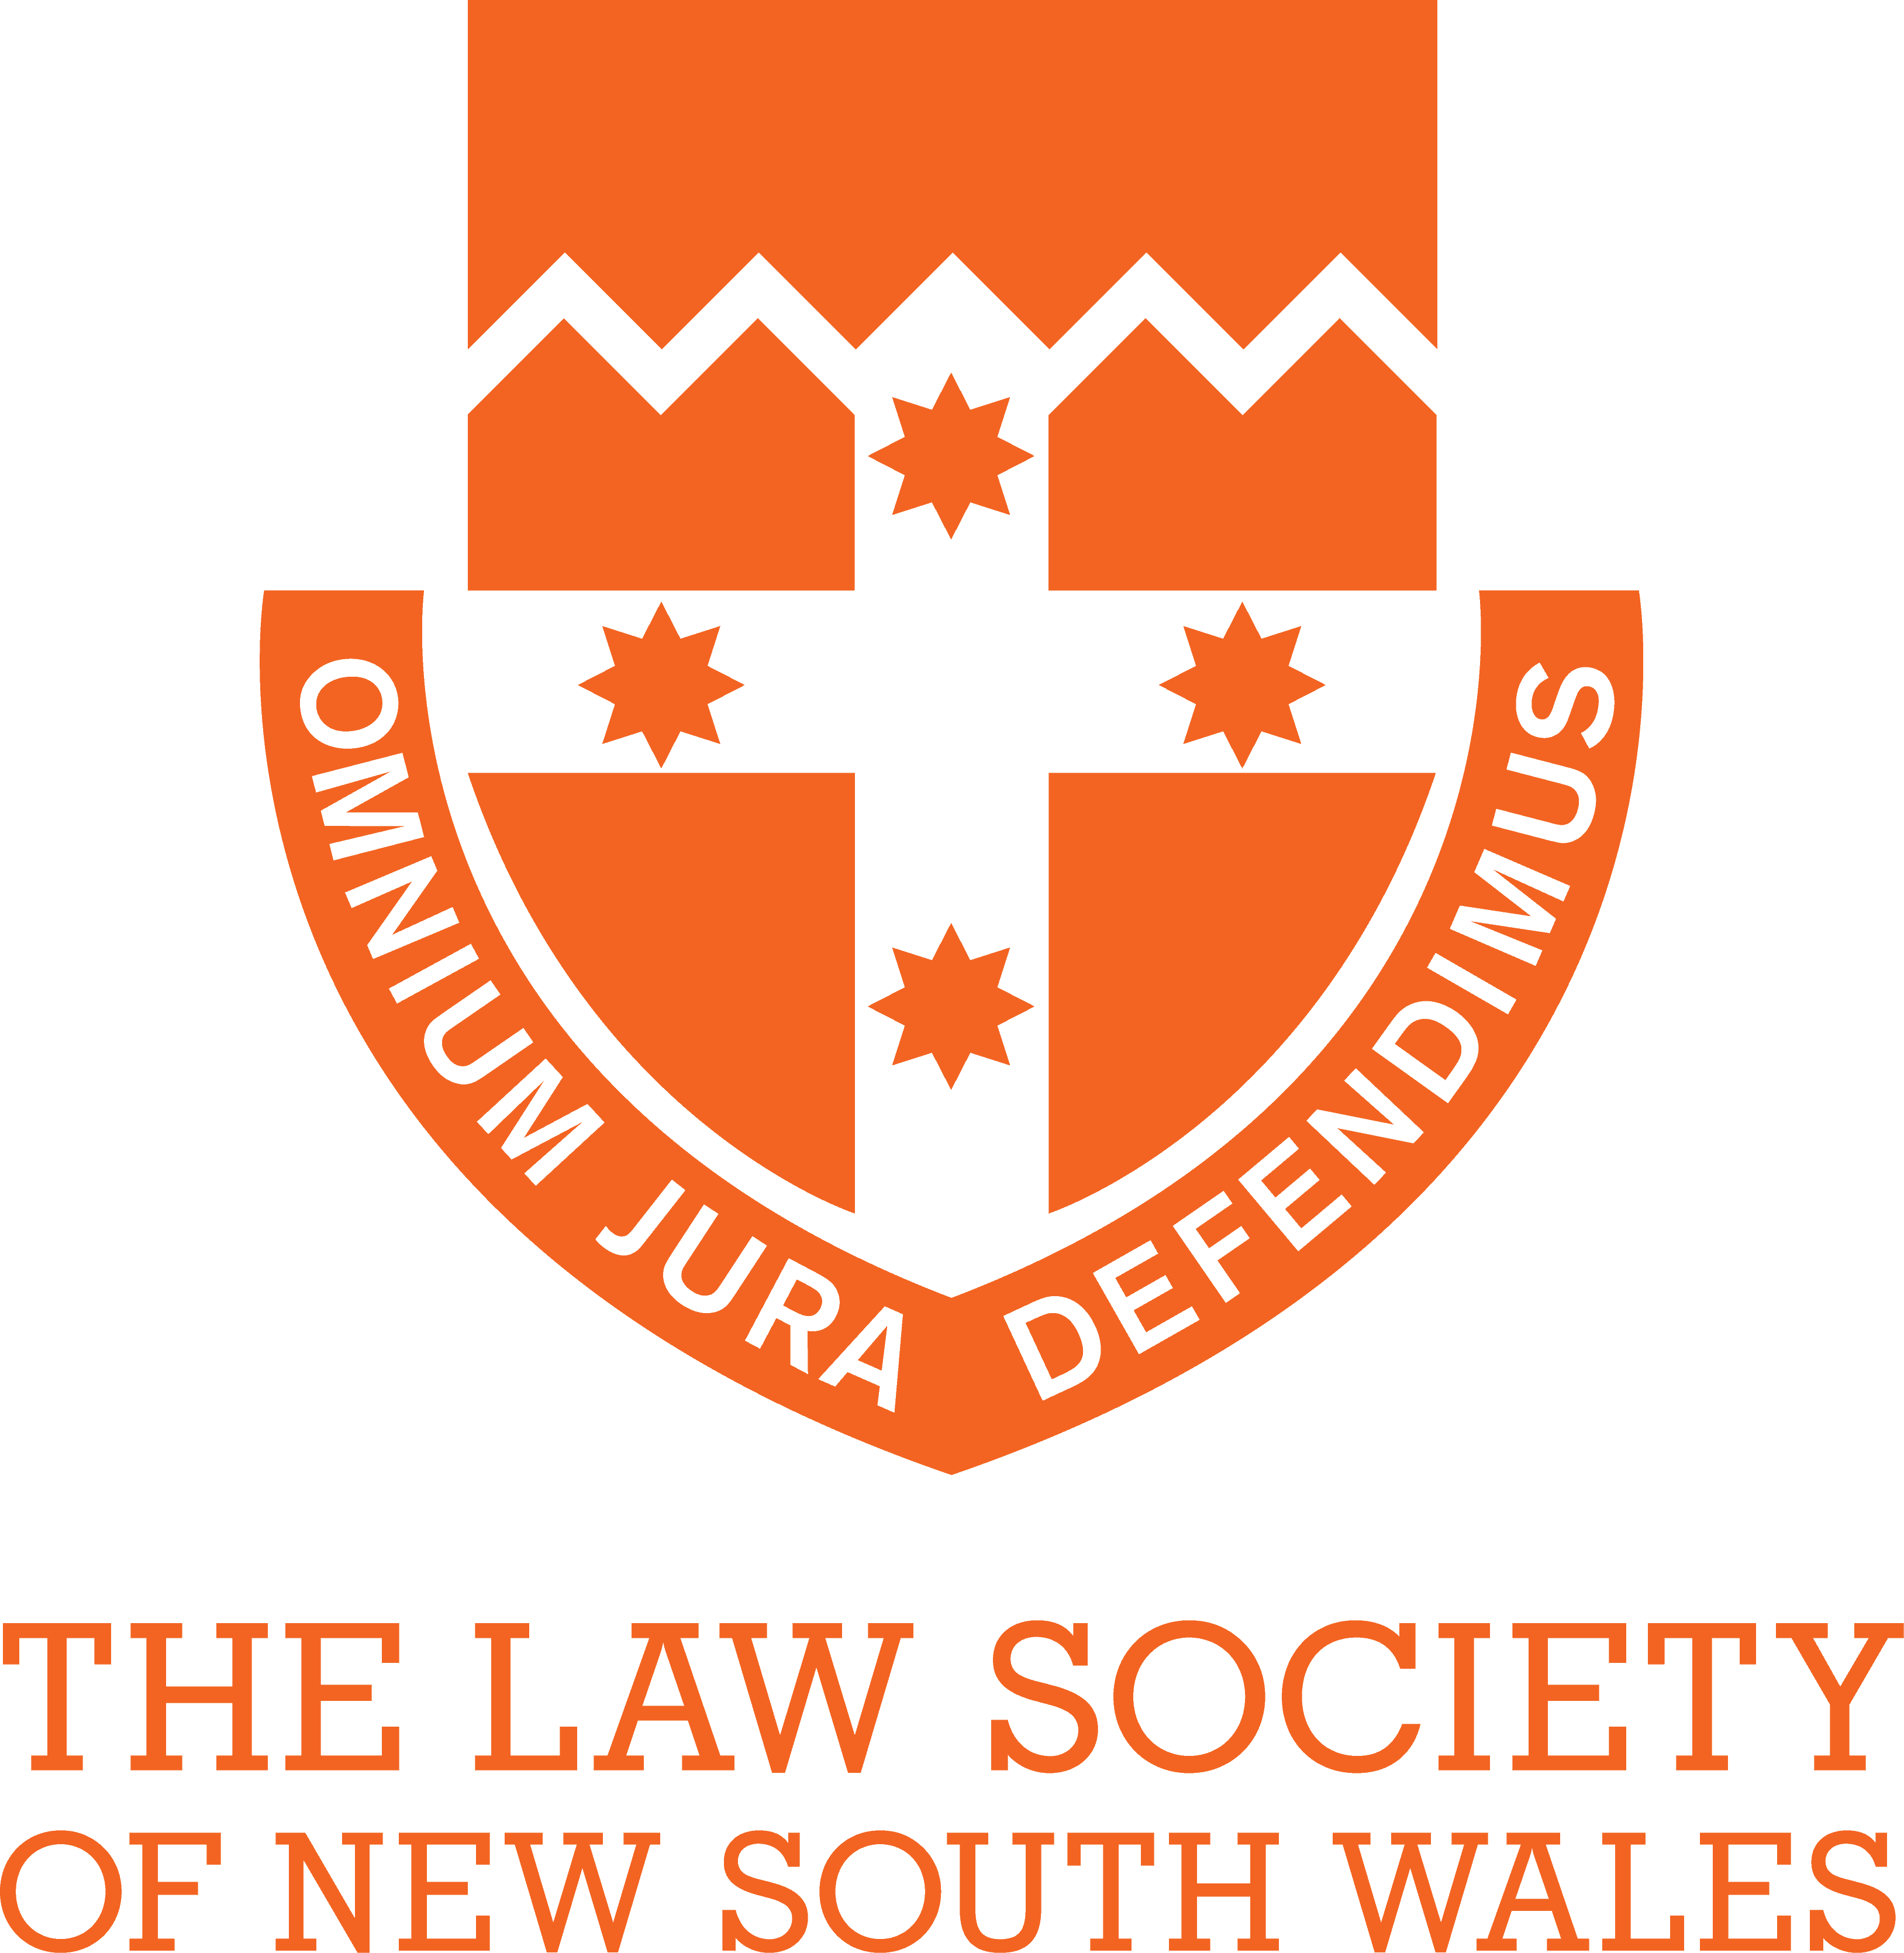 The Law Society New South Wales